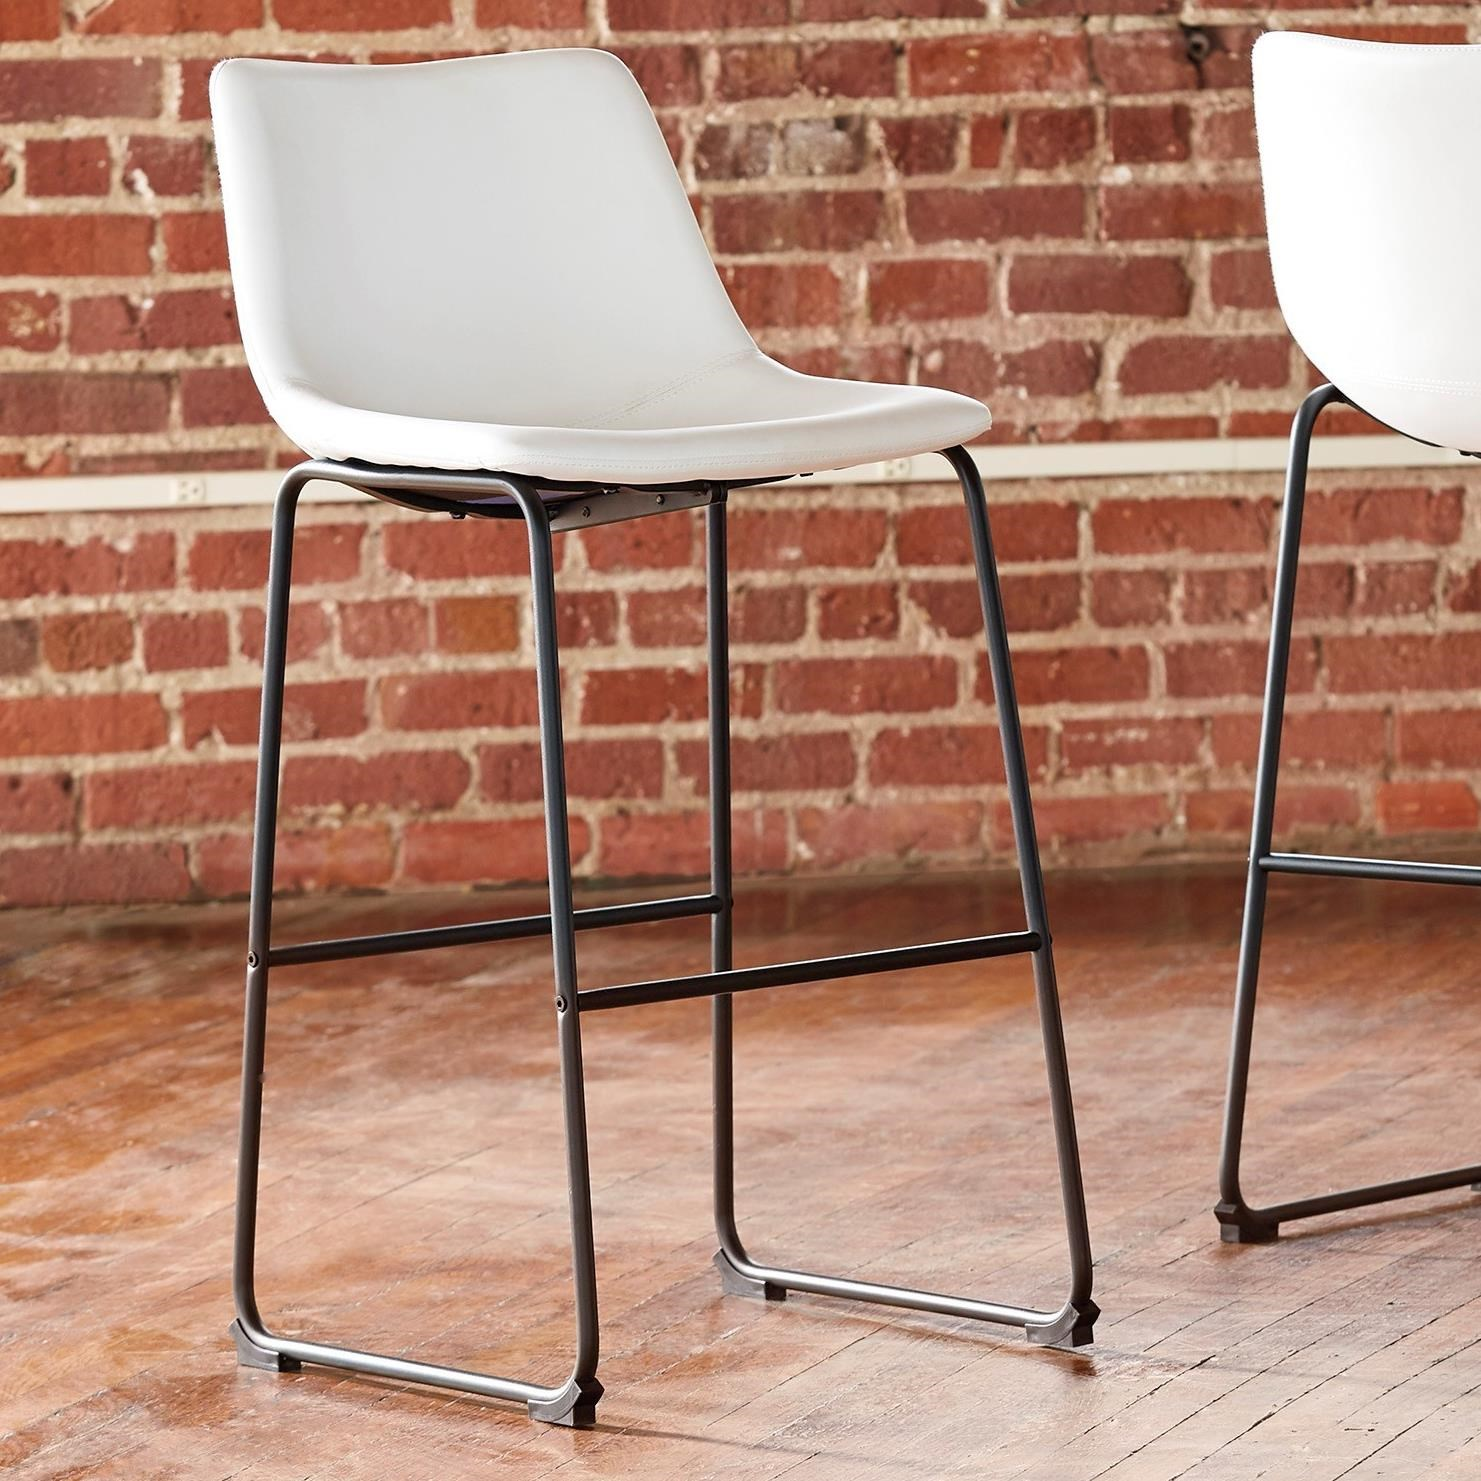 Centiar Tall Upholstered Barstool by Signature Design by Ashley at Northeast Factory Direct